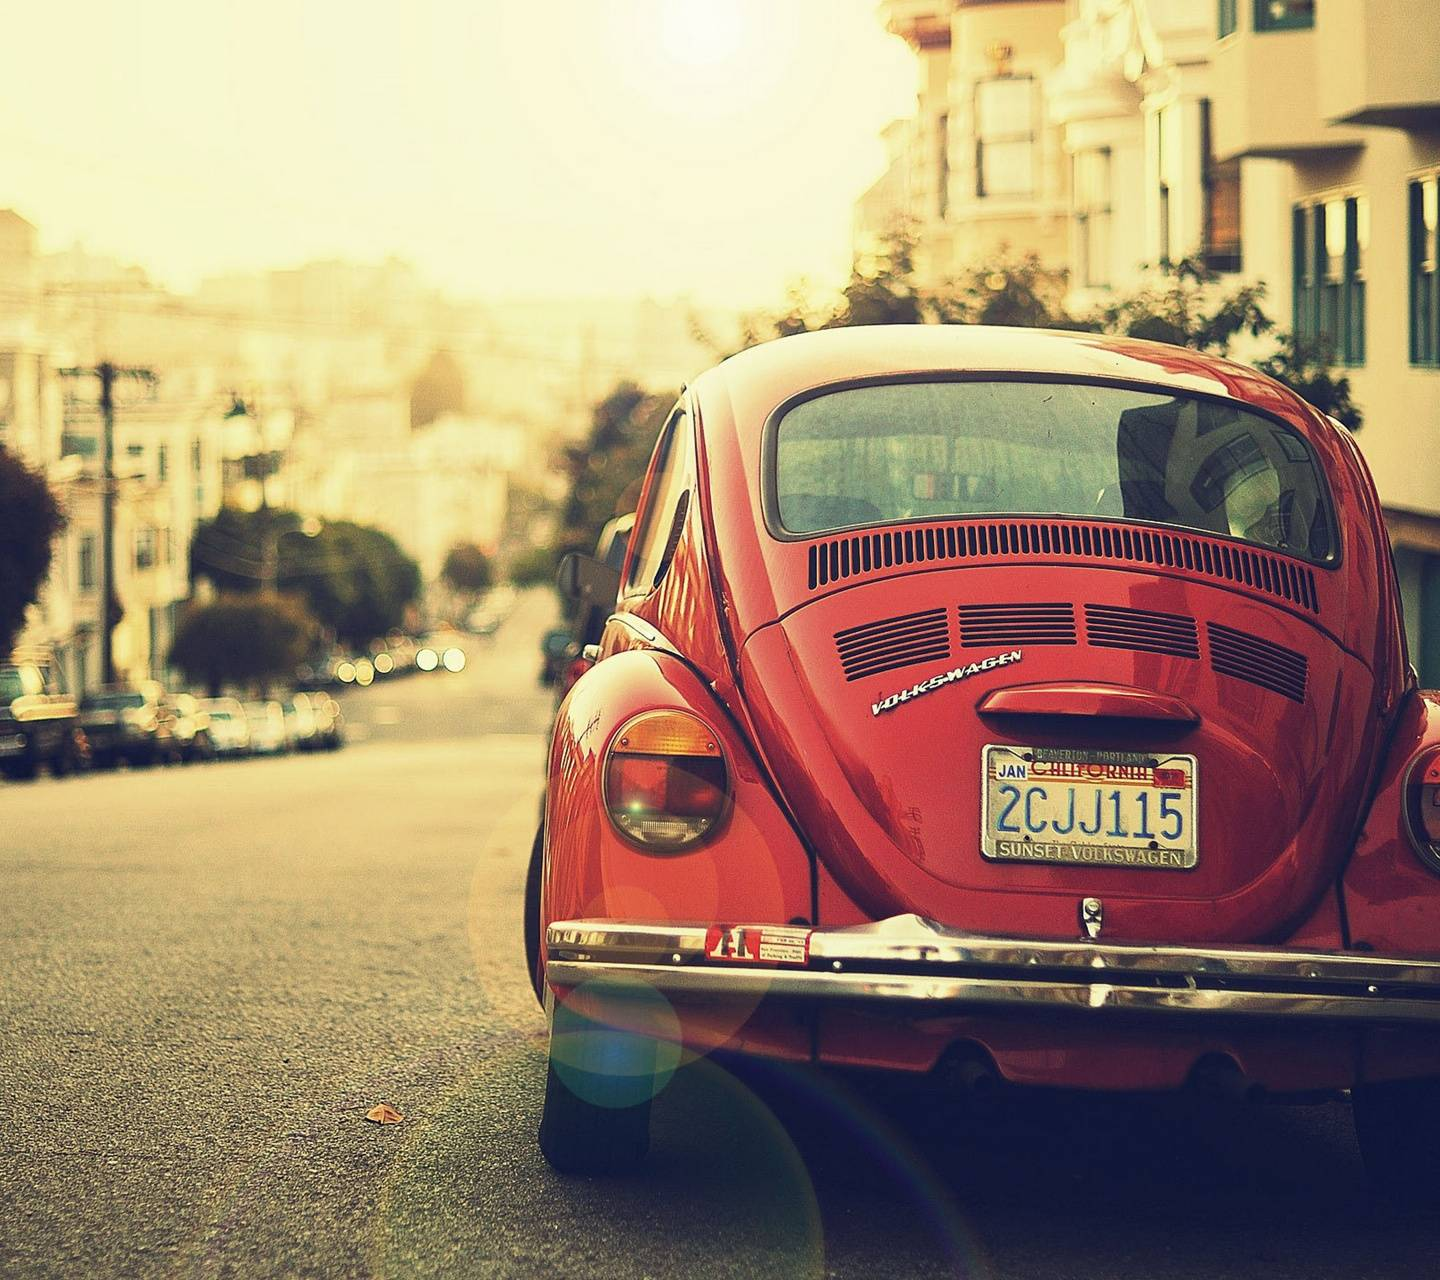 Vw Beetle Wallpaper By Mabar7 3c Free On Zedge